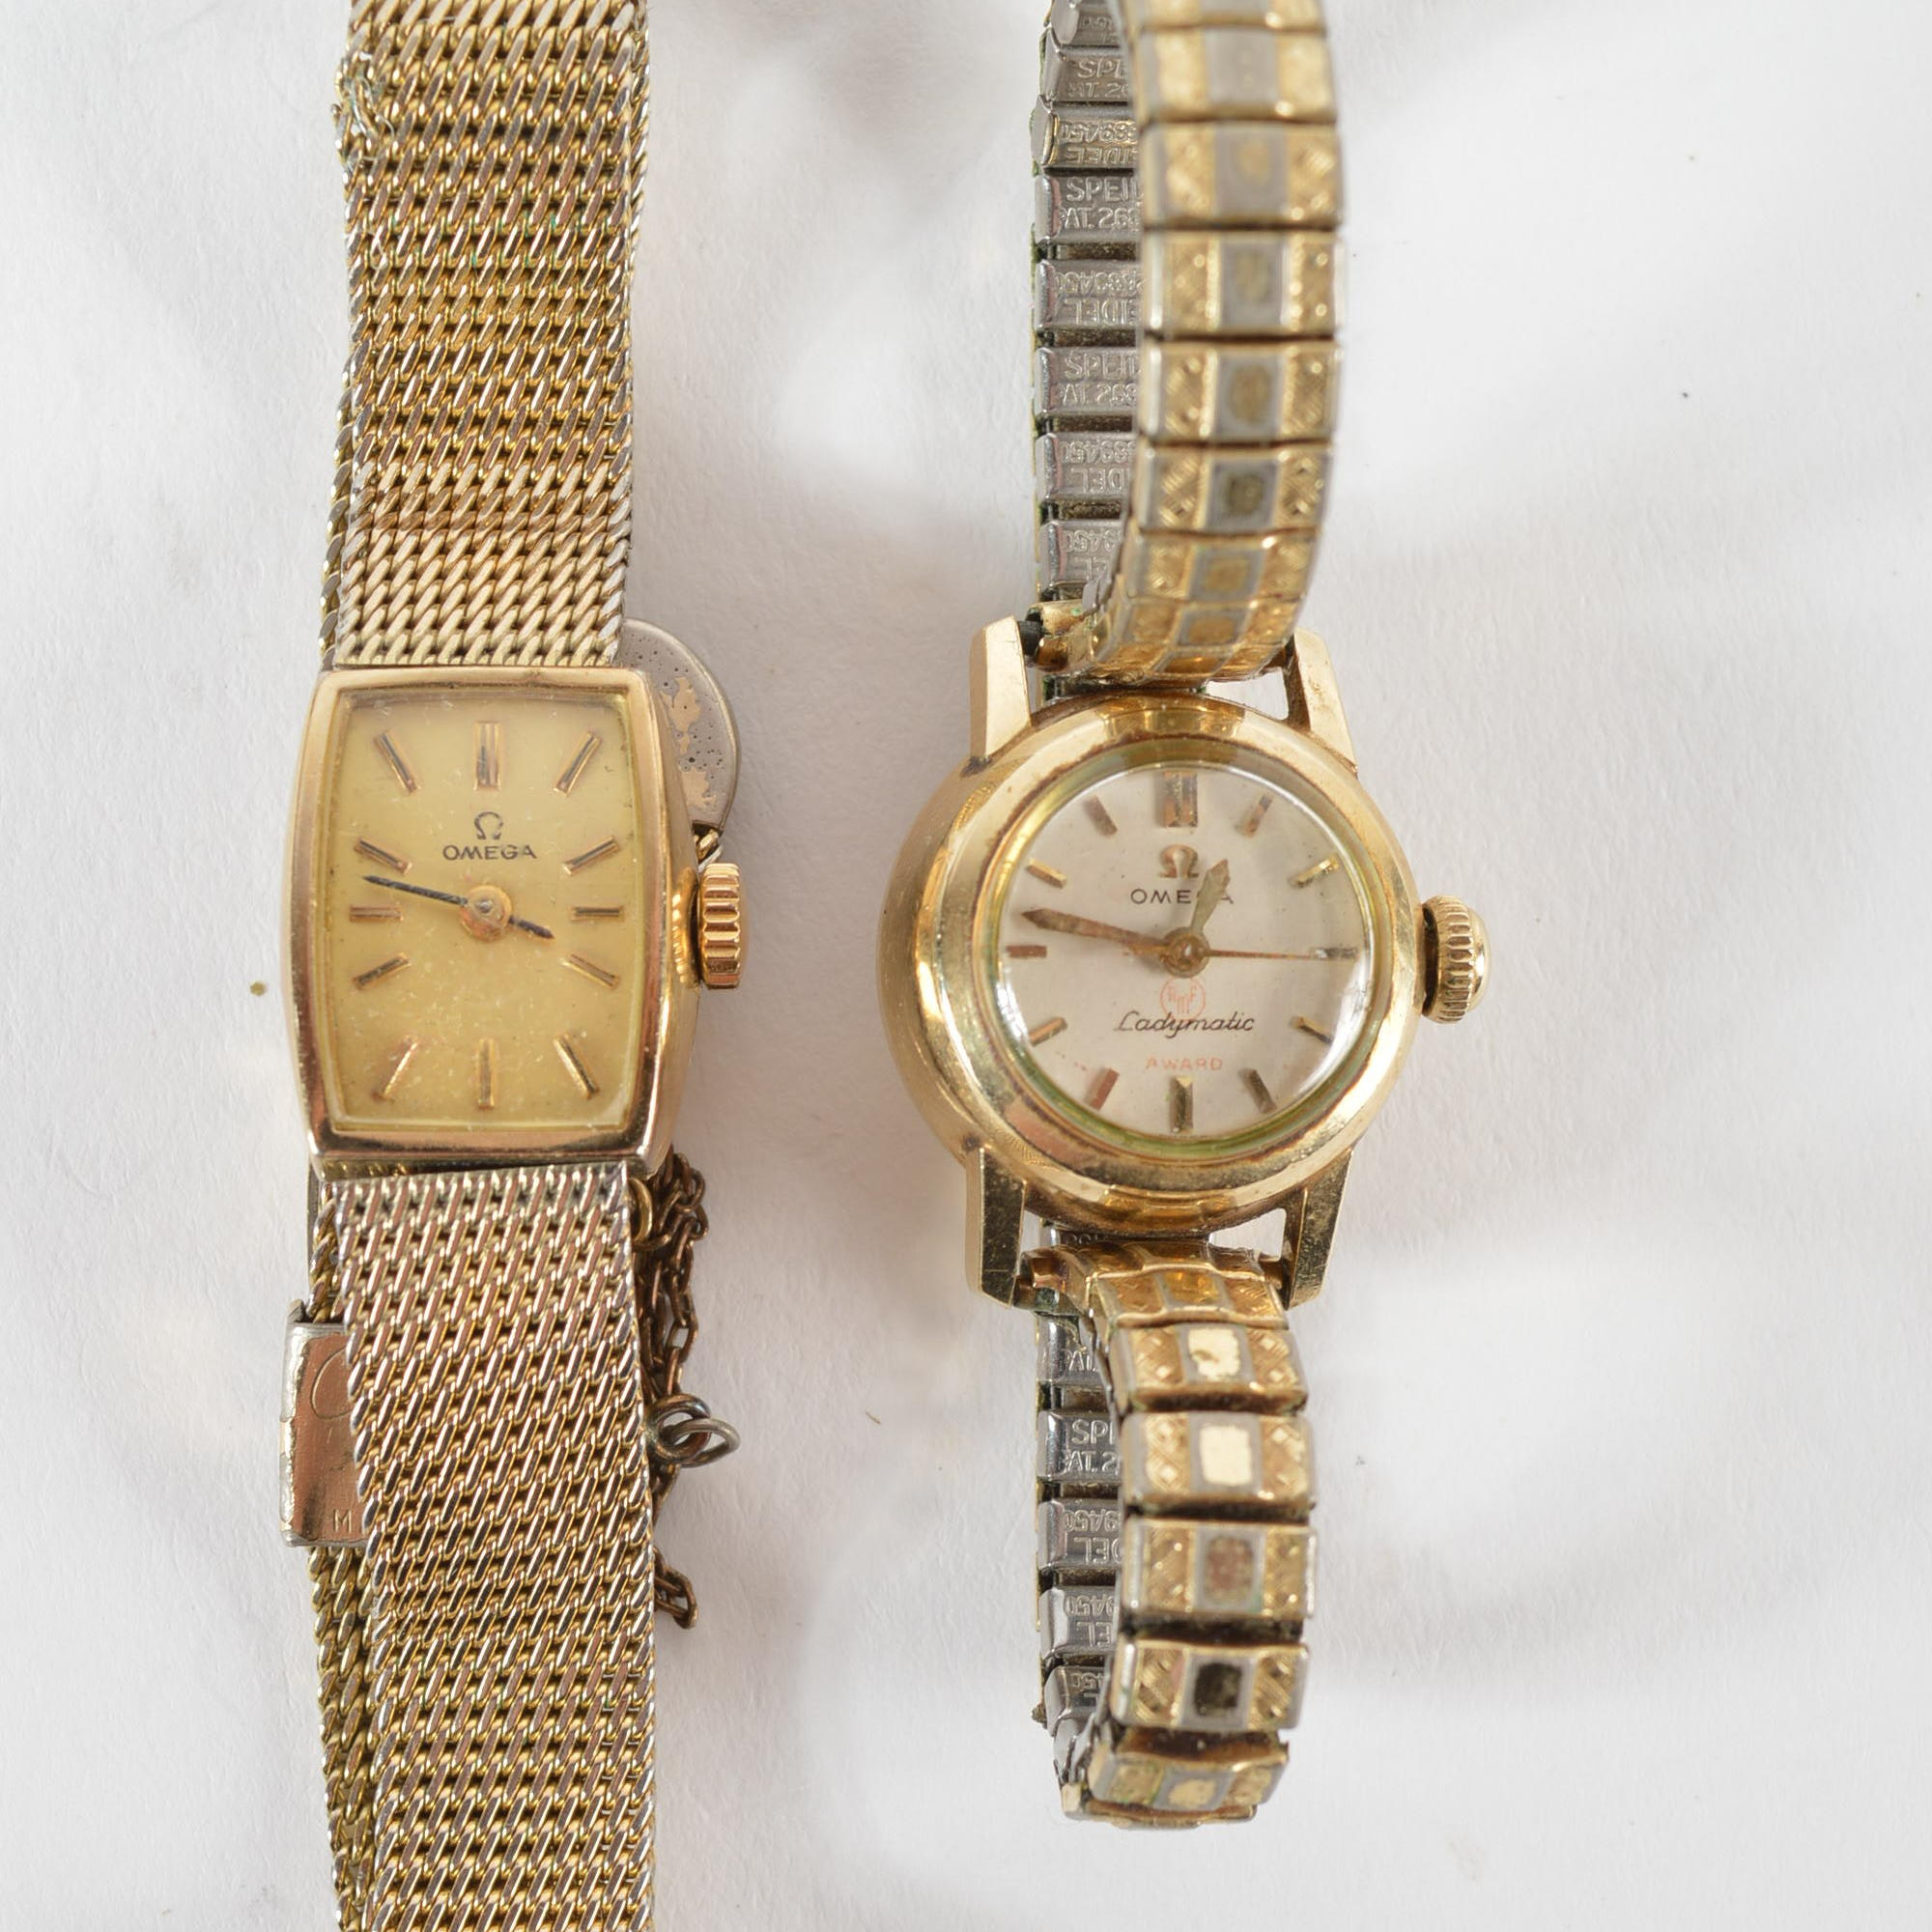 Vintage Omega Gold-Filled Wristwatches